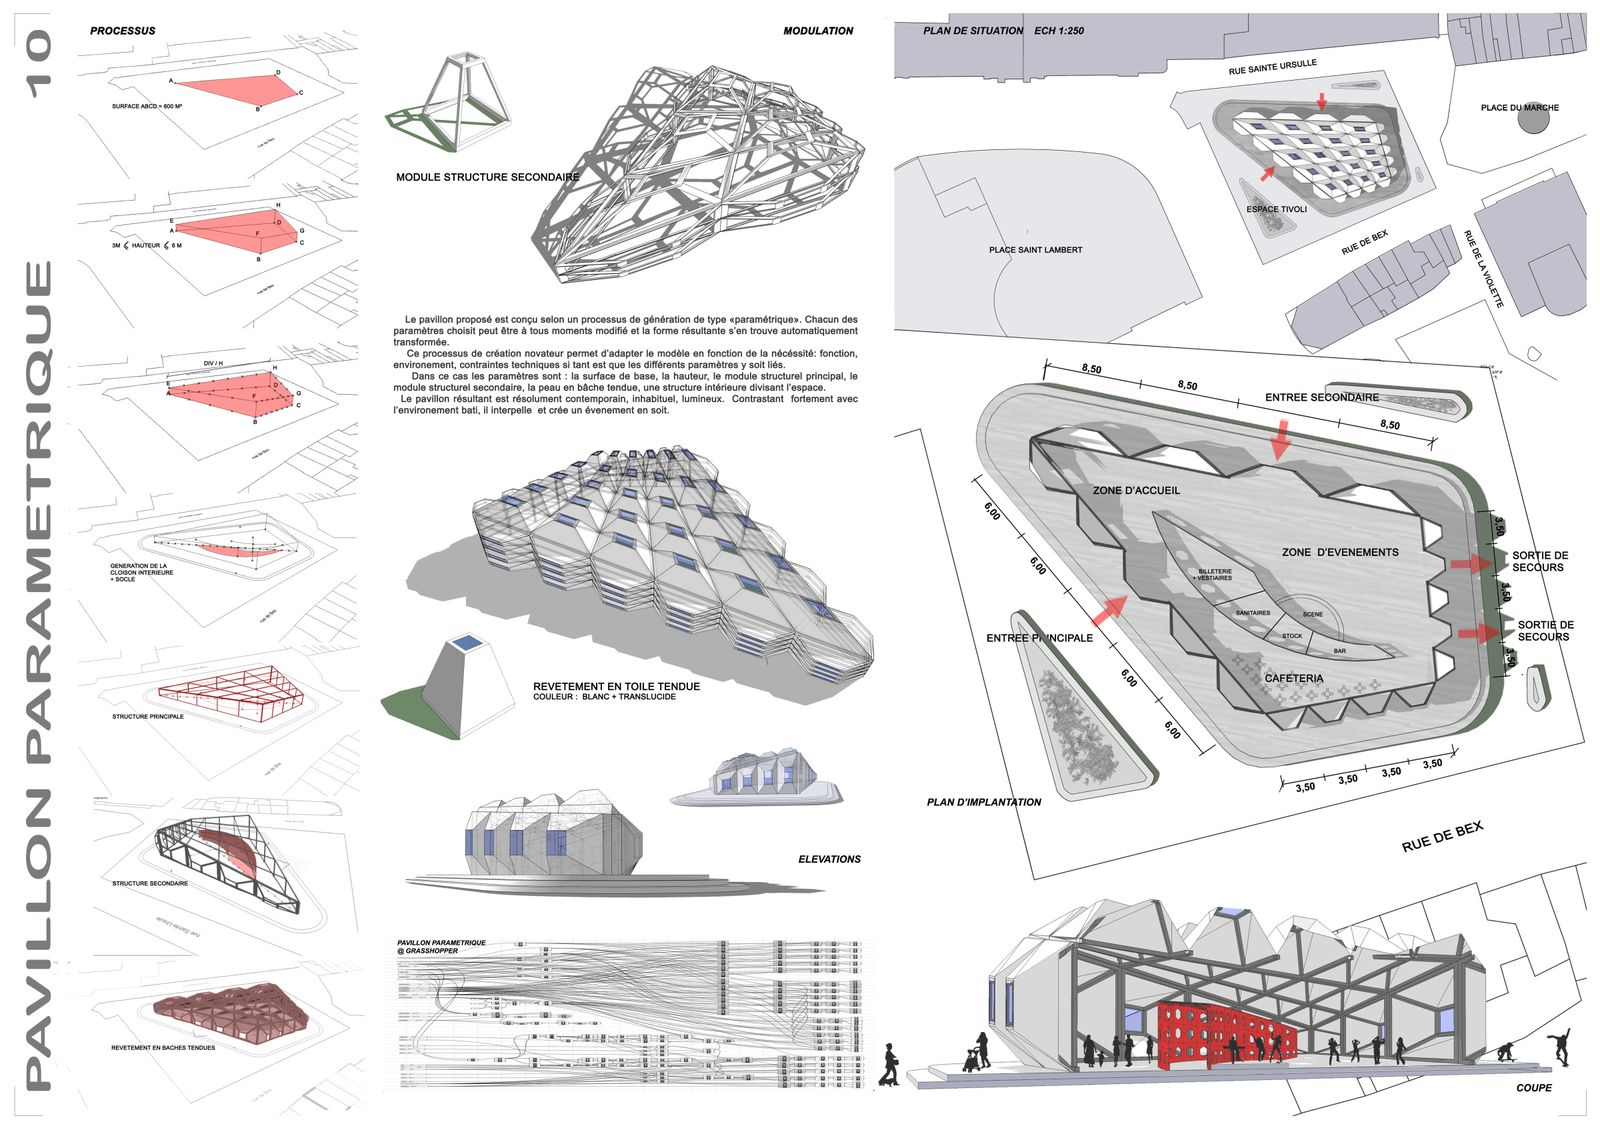 architecture param trique an architecture lab ForArchitecture Parametrique